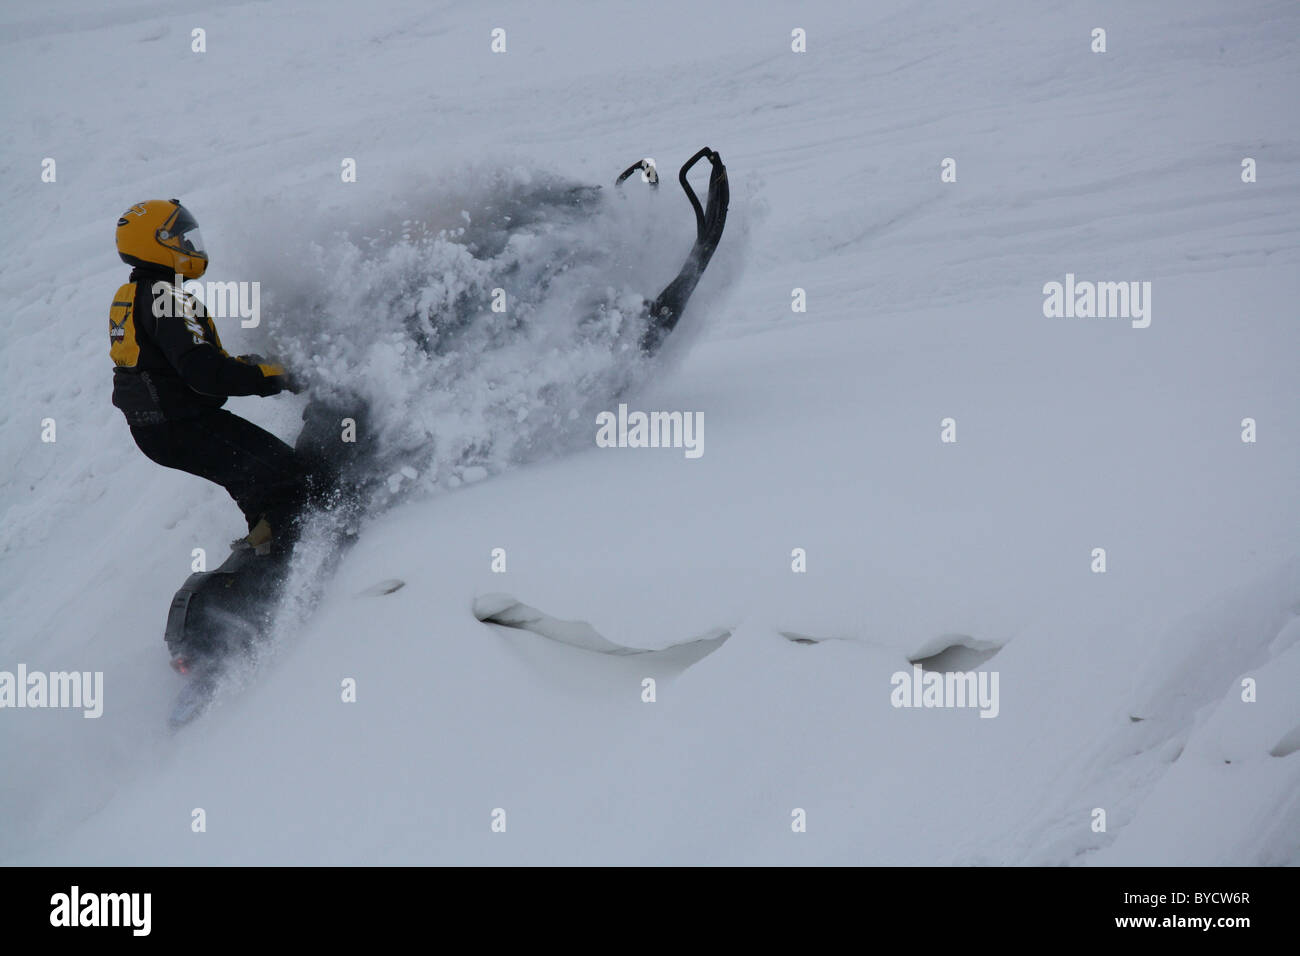 too much snow - Stock Image